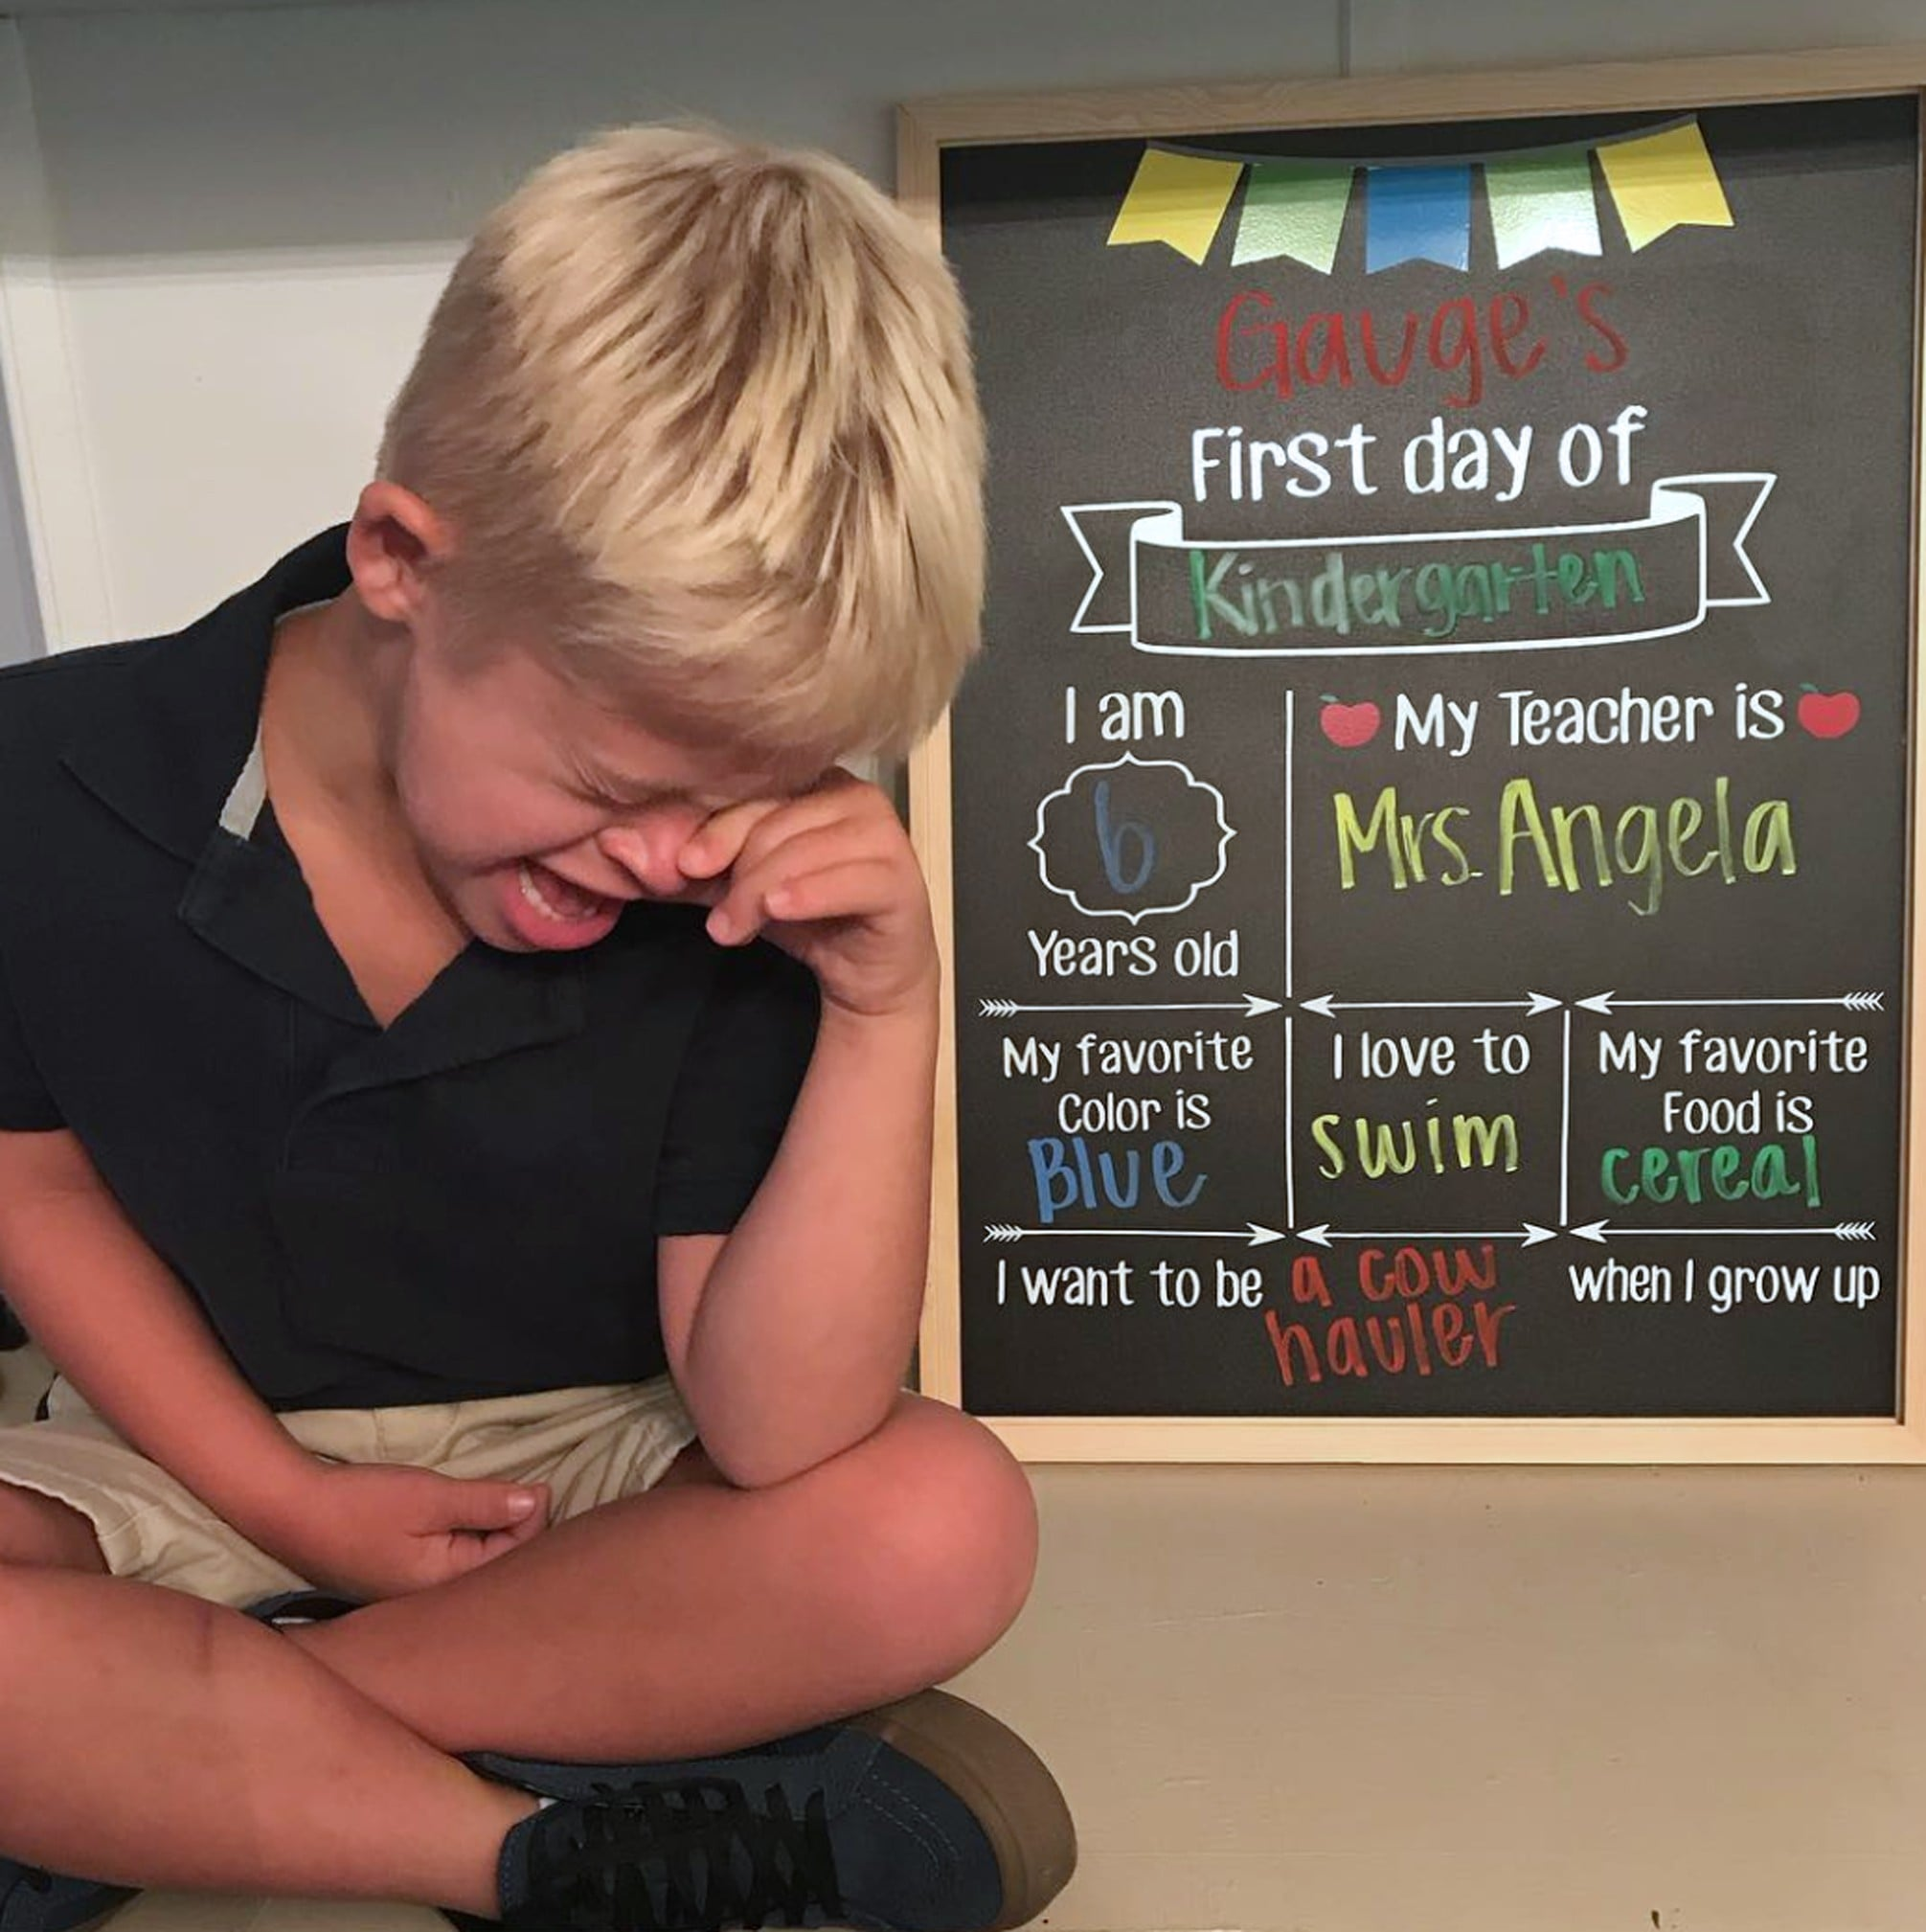 Funny 1st day of school pictures